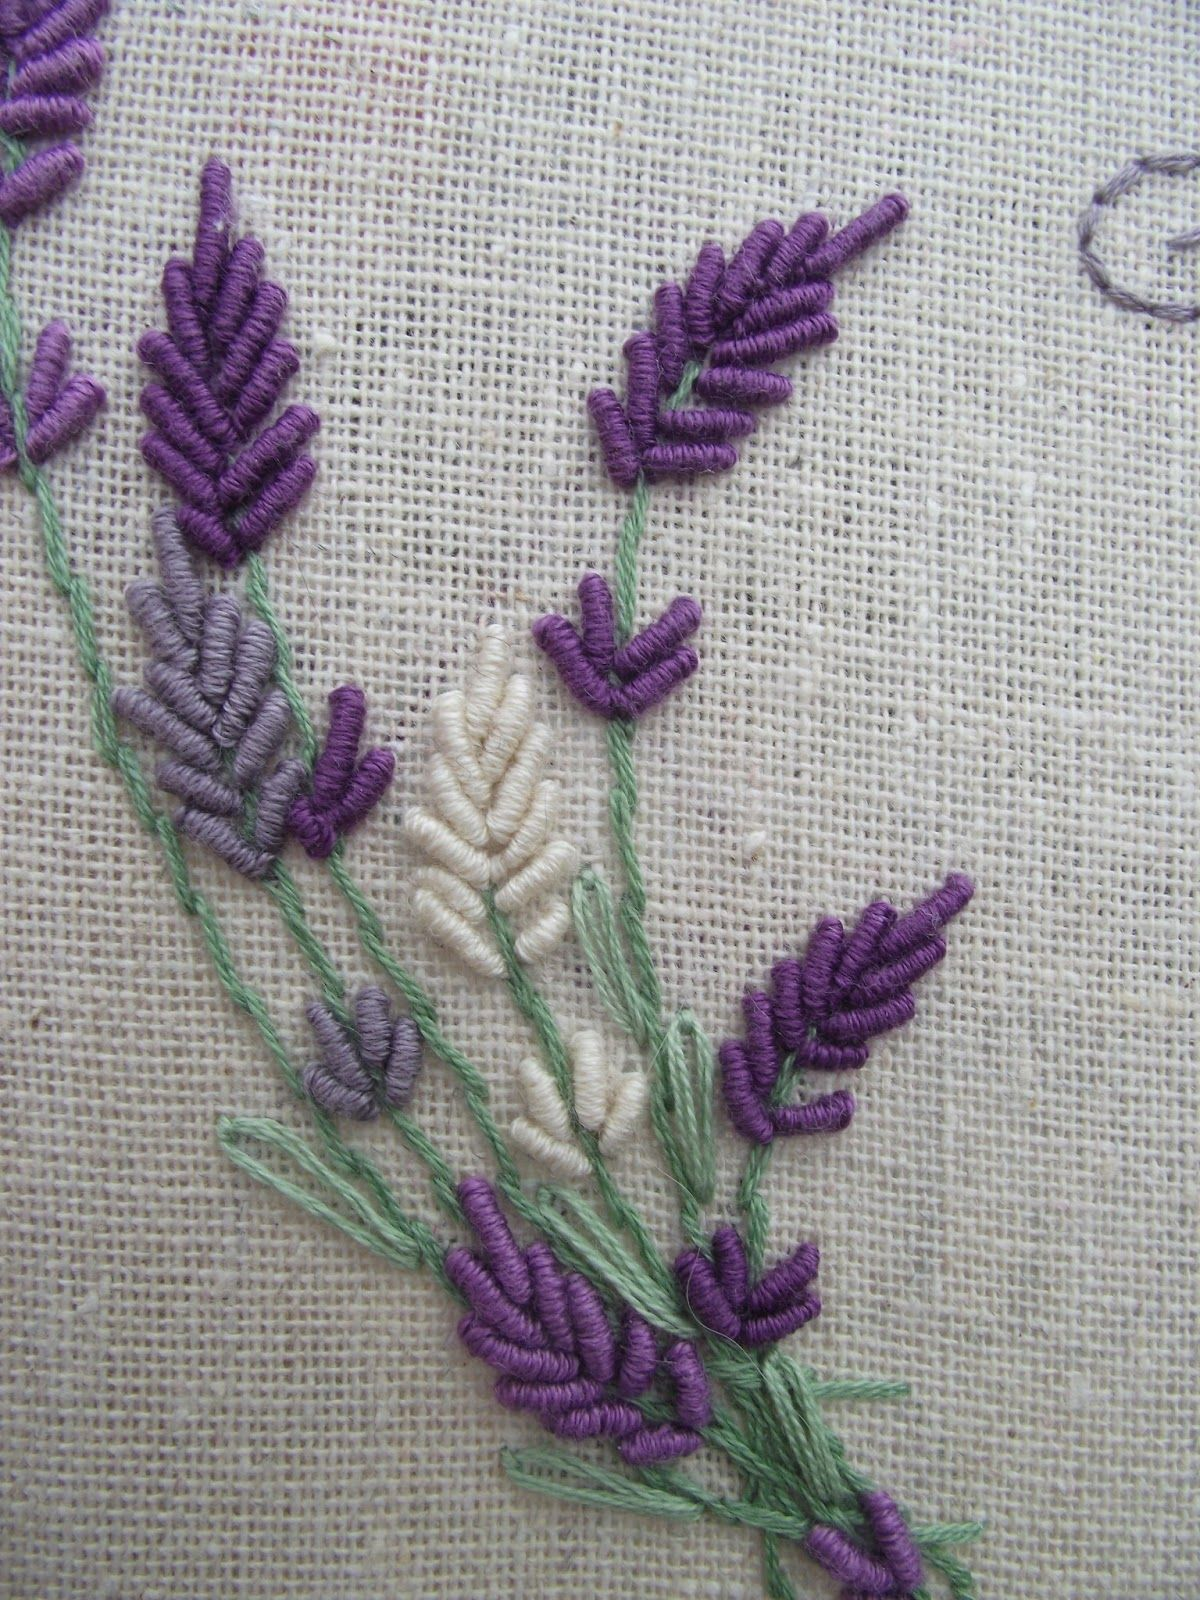 DSCF4497.JPG (1200u00d71600) | Stitchery | Pinterest | Embroidery Hand Embroidery And Tutorials